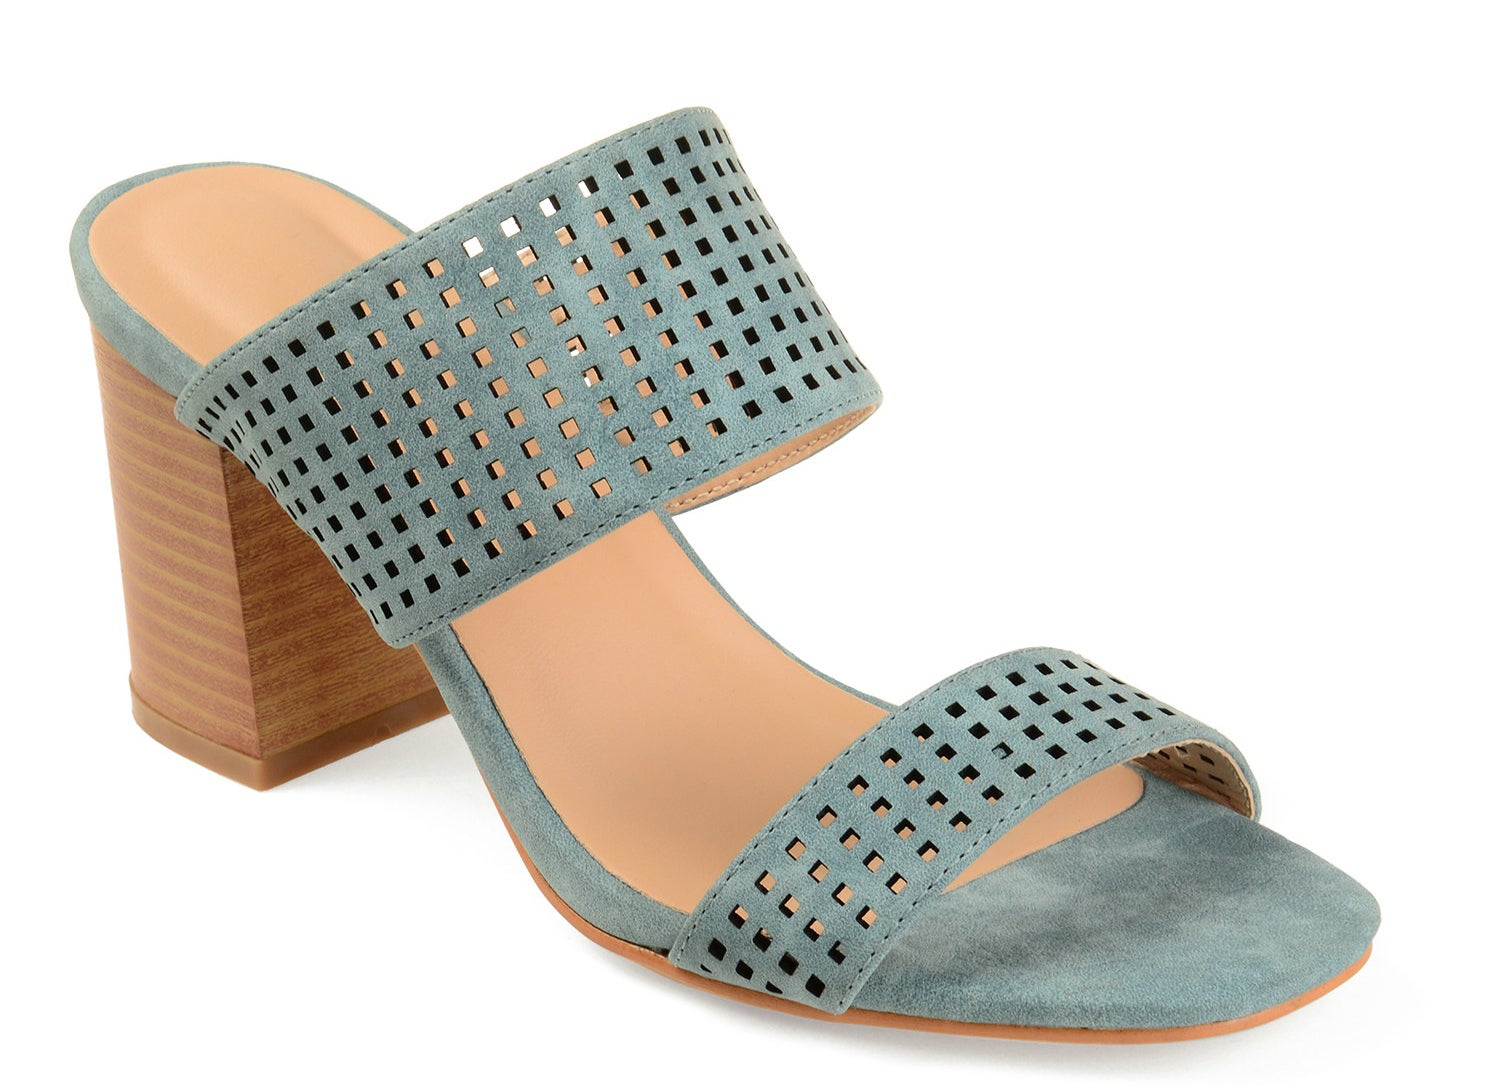 A light blue heeled mule sandal with a tan insole and heel